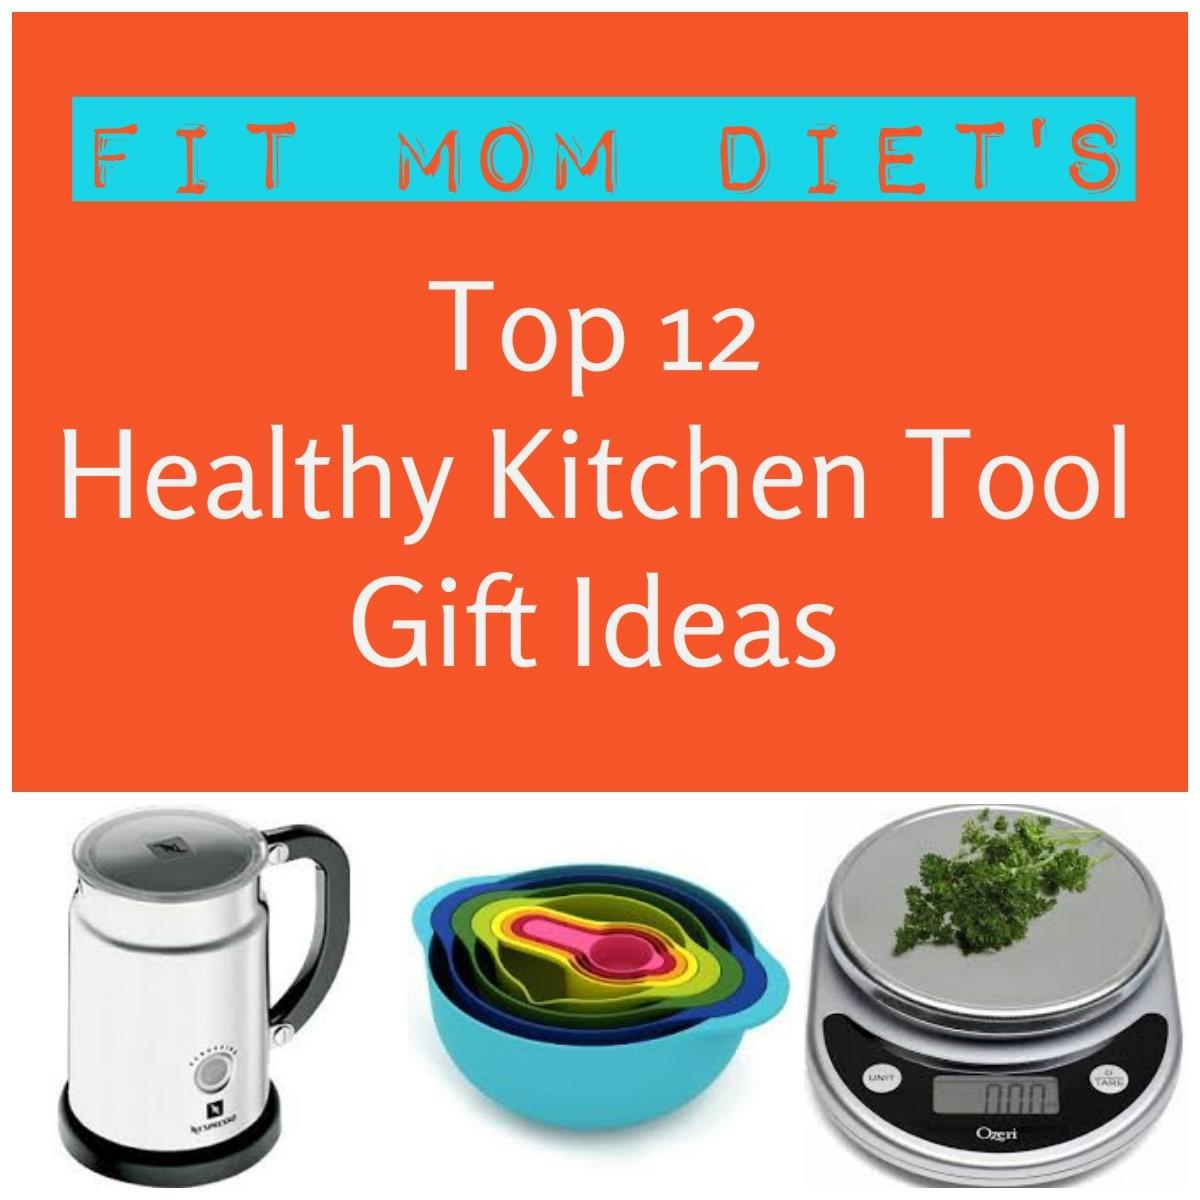 Top Healthy Kitchen Tool Gift Ideas Fit Mom Diet